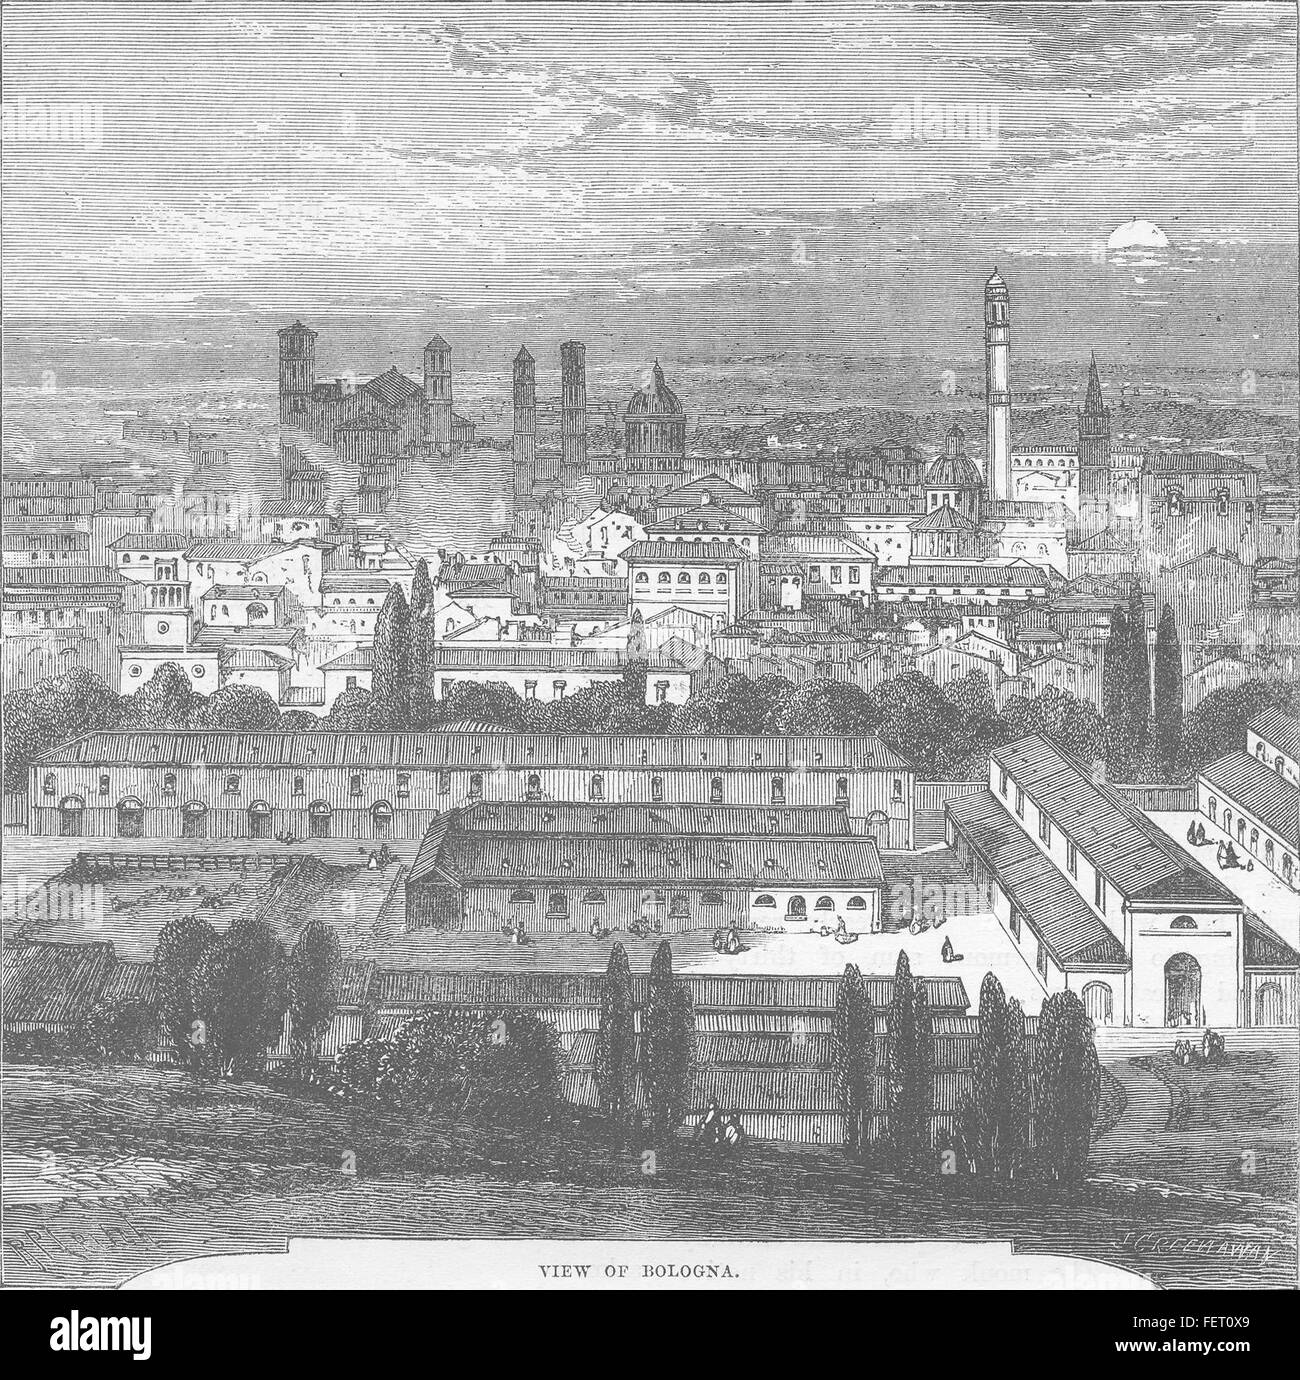 ITALY View of Bologna c1877. History of Protestantism, JA Wylie, published by Cassell & Co - Stock Image